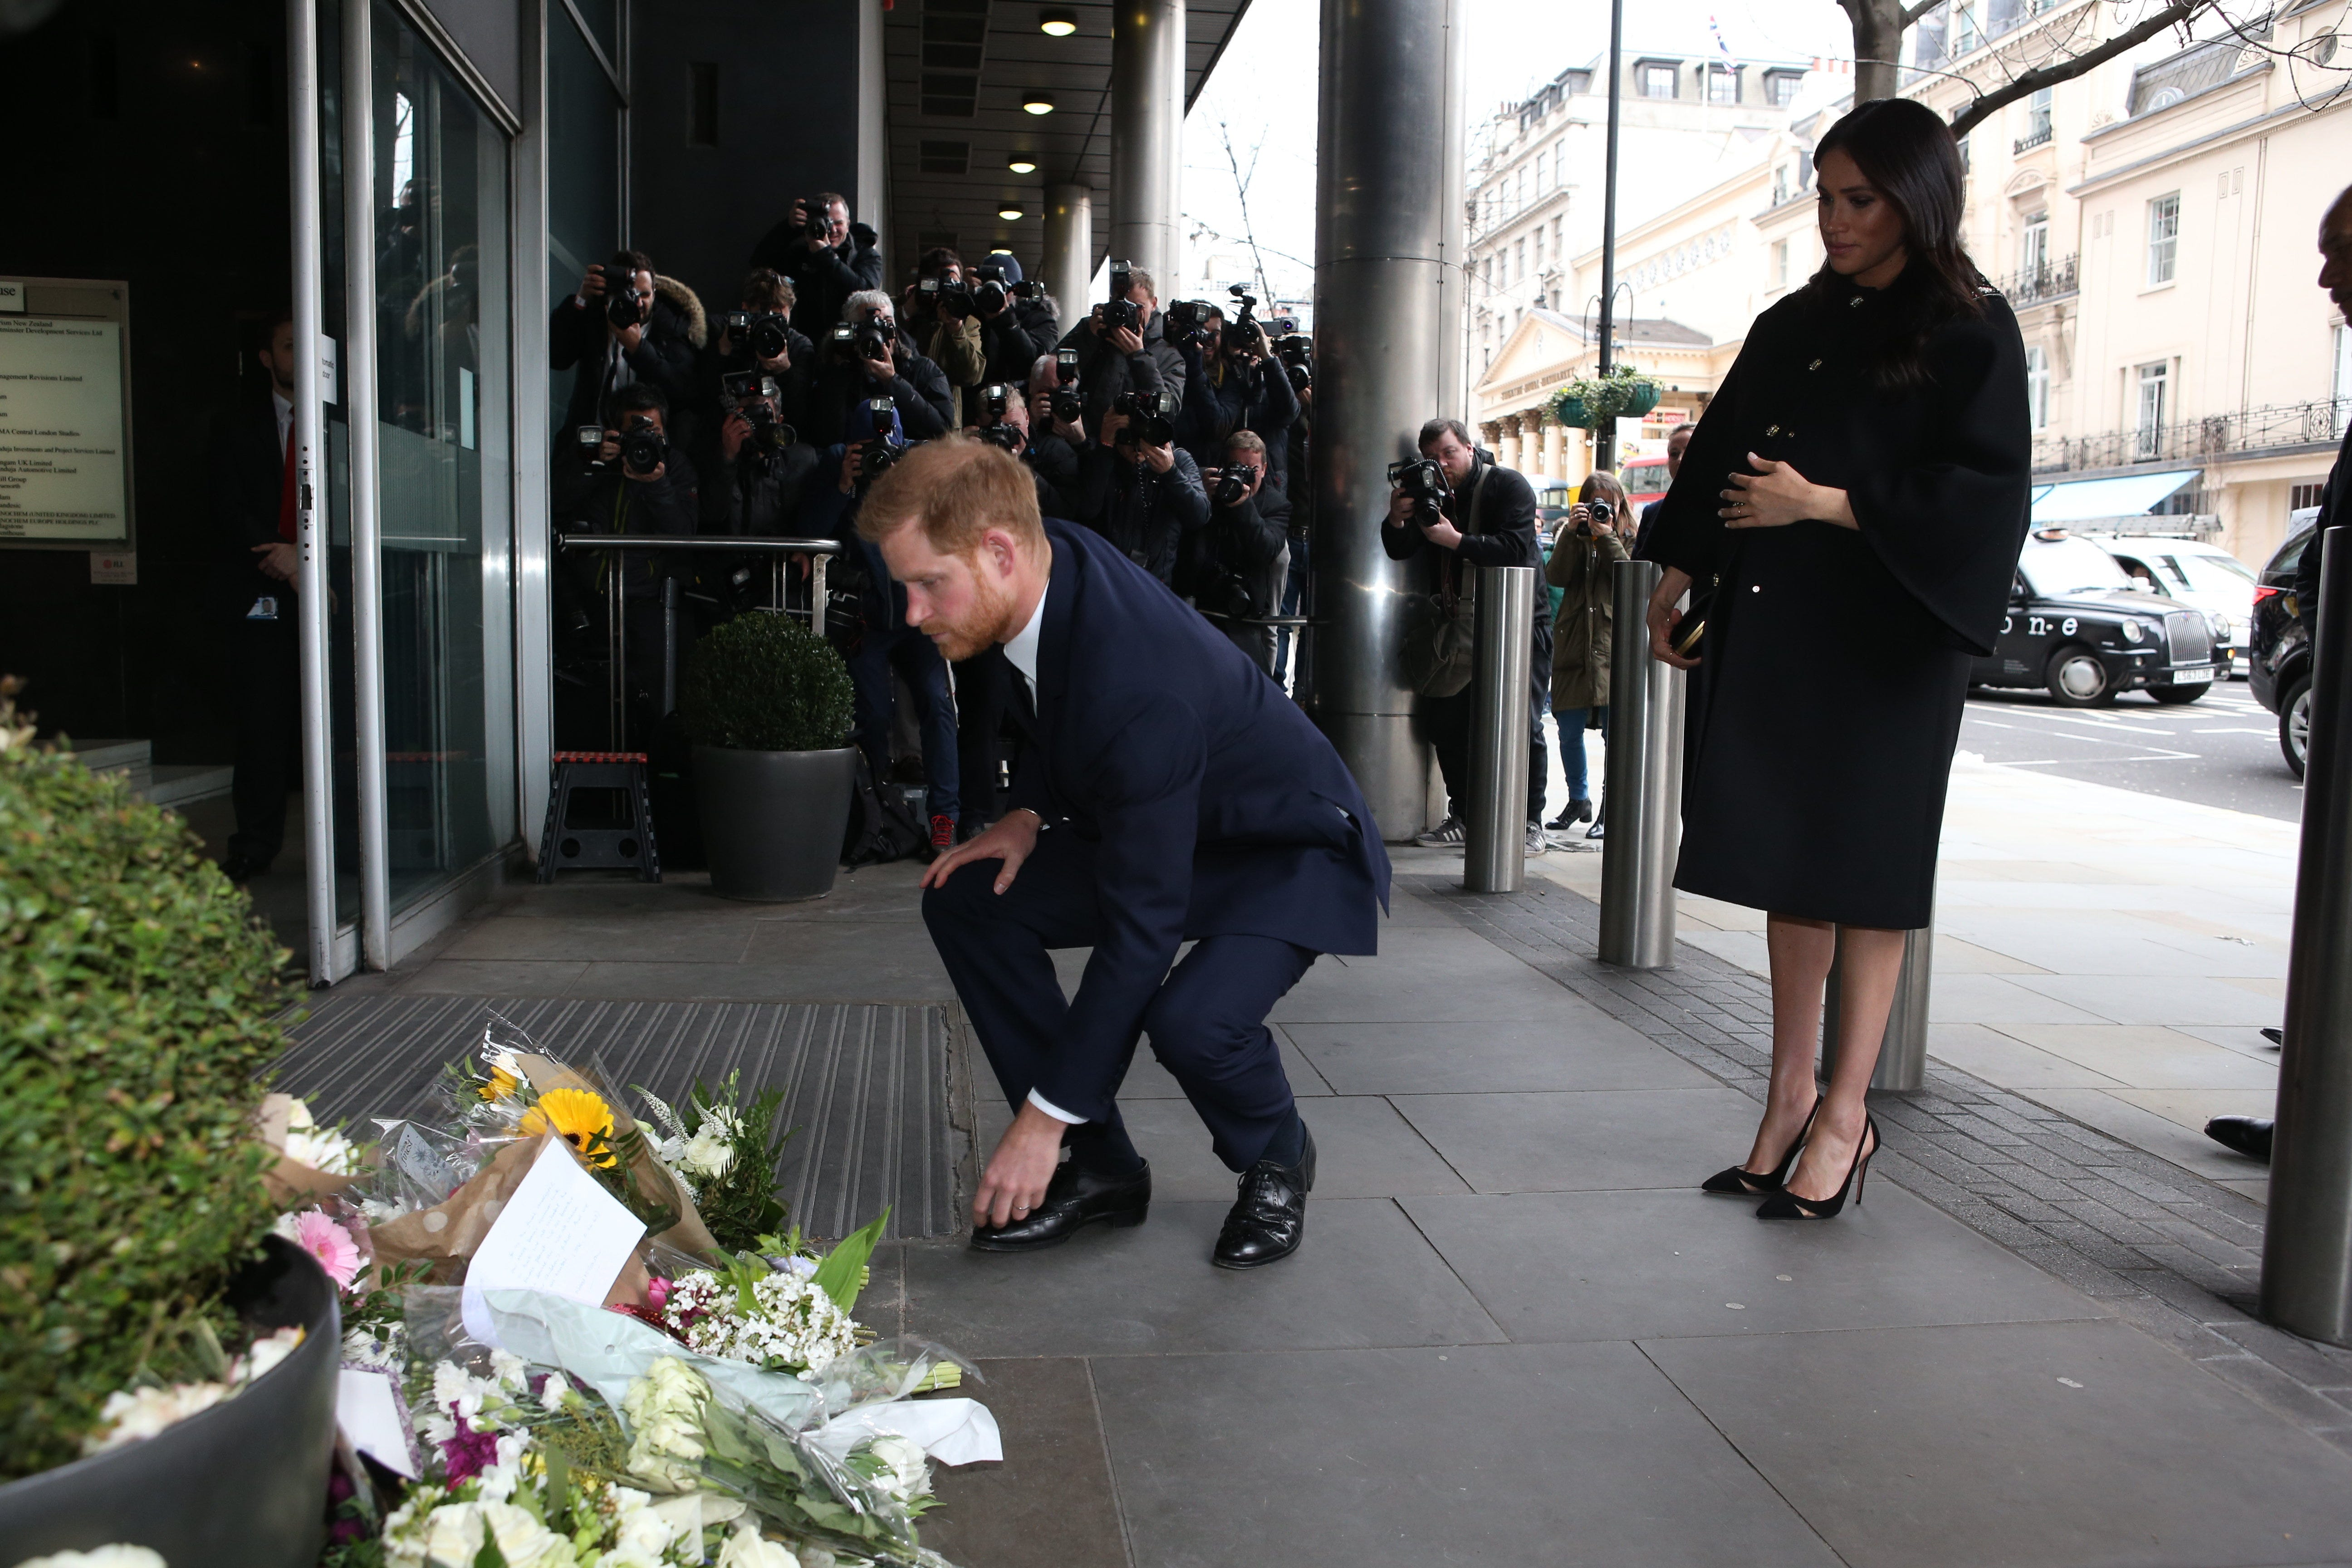 Duchess Meghan of Sussex and Prince Harry lay floral tributes at New Zealand House on March 19, 2019 in London, following the recent terror attack at mosques in Christchurch that killed 50 people.